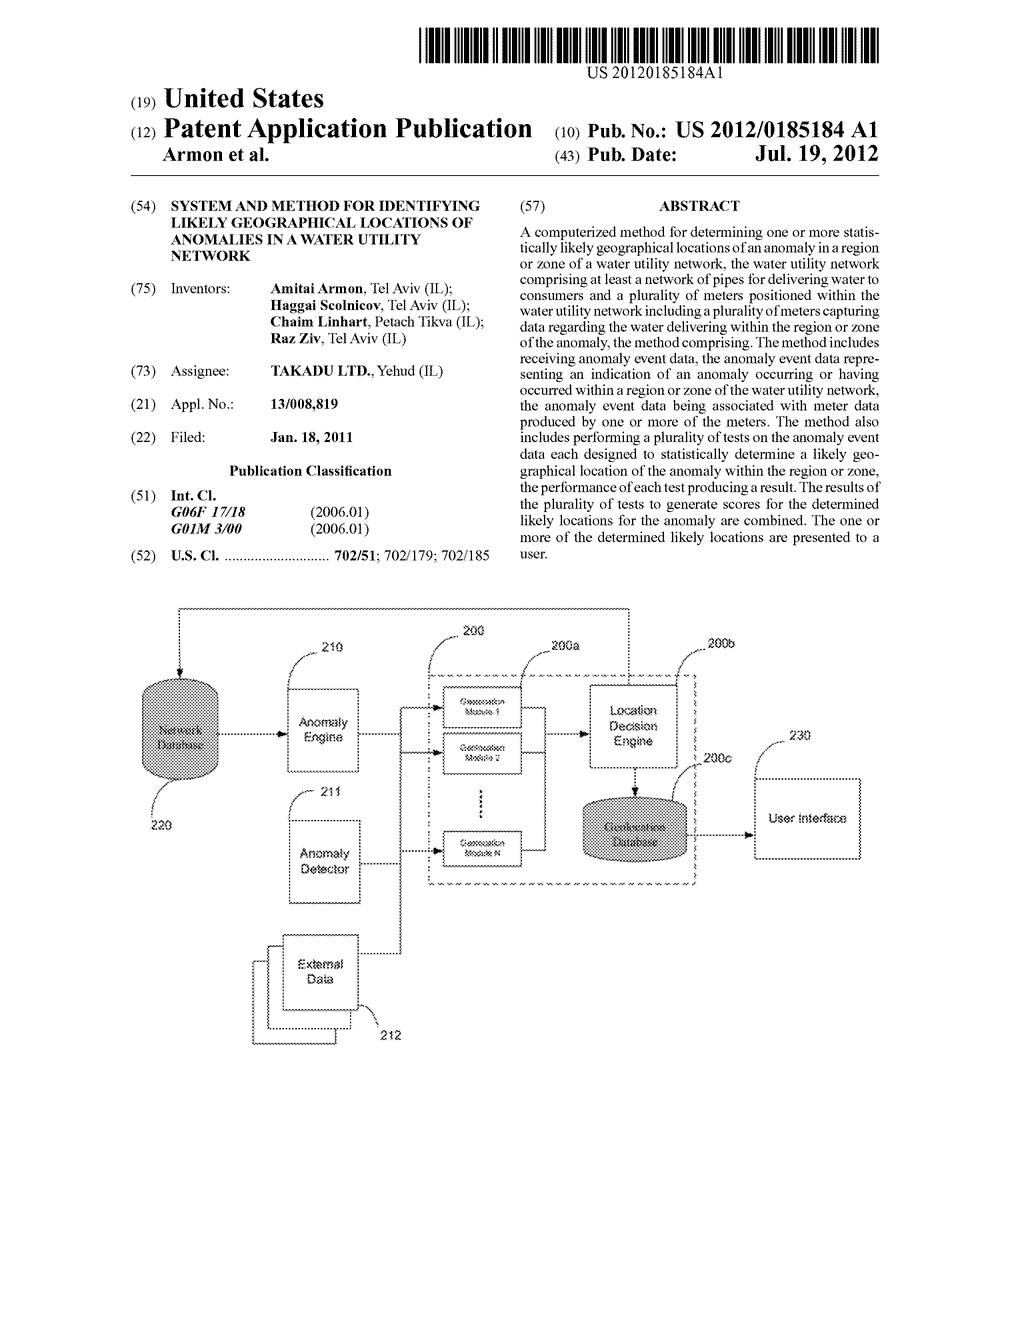 SYSTEM AND METHOD FOR IDENTIFYING LIKELY GEOGRAPHICAL LOCATIONS OF     ANOMALIES IN A WATER UTILITY NETWORK - diagram, schematic, and image 01